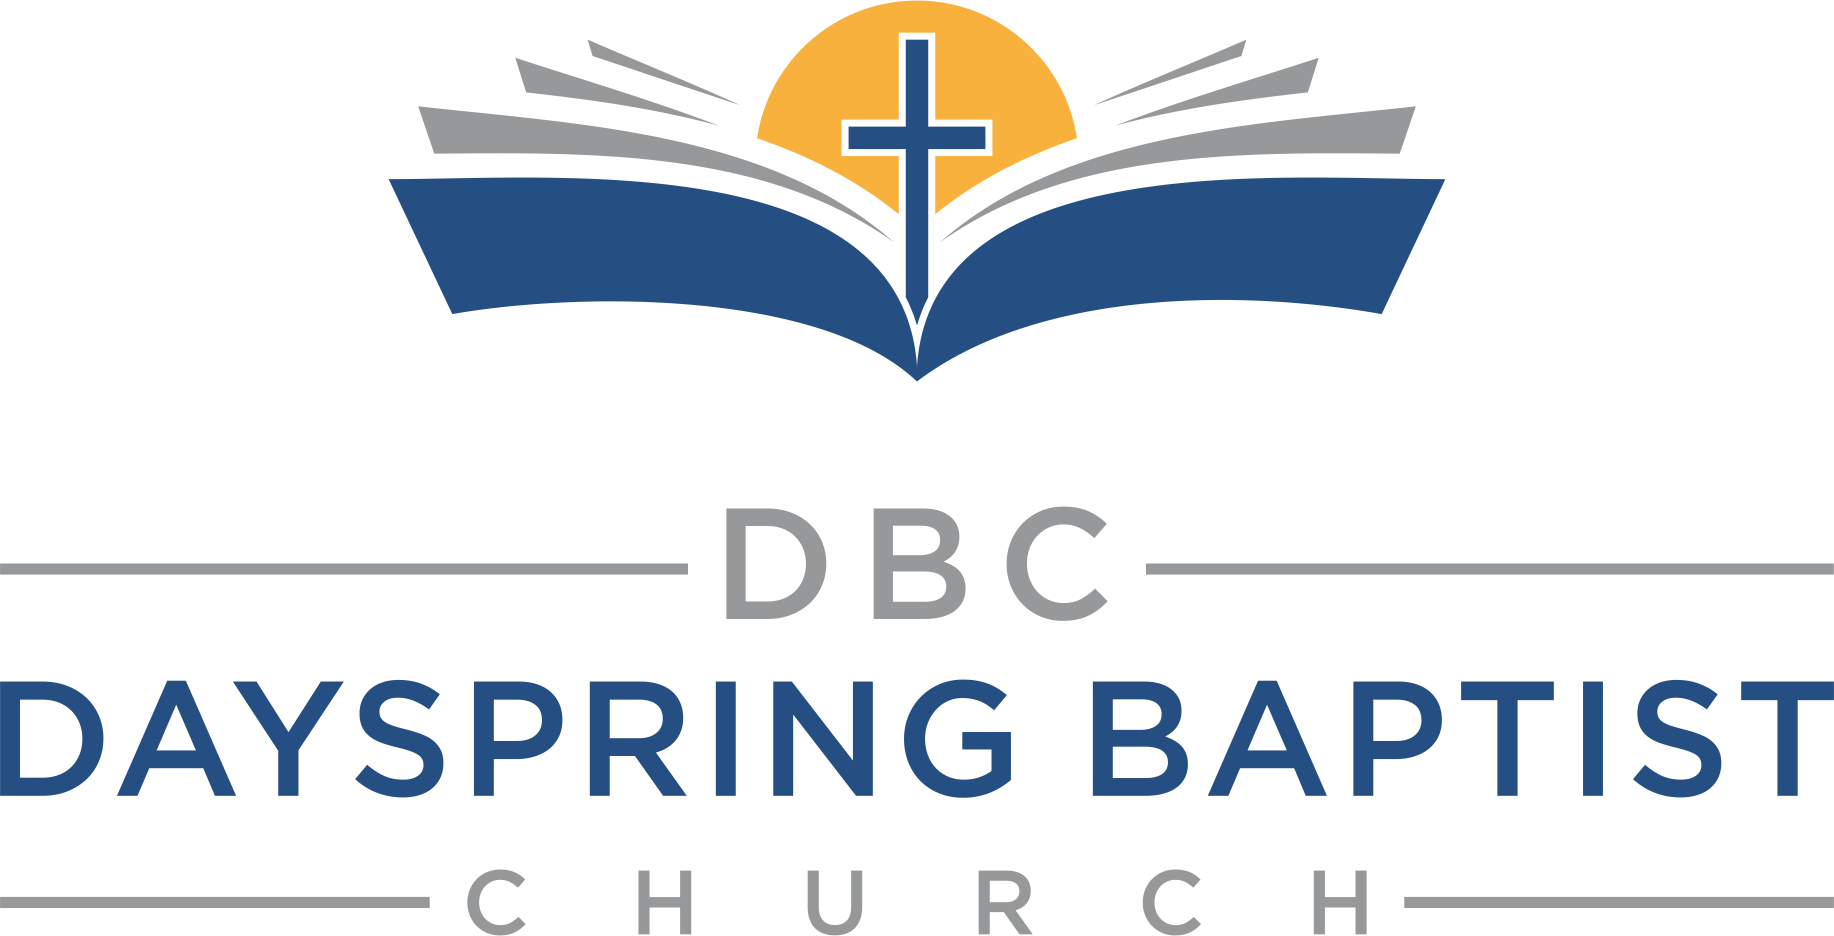 Copy of DBC Baptist1